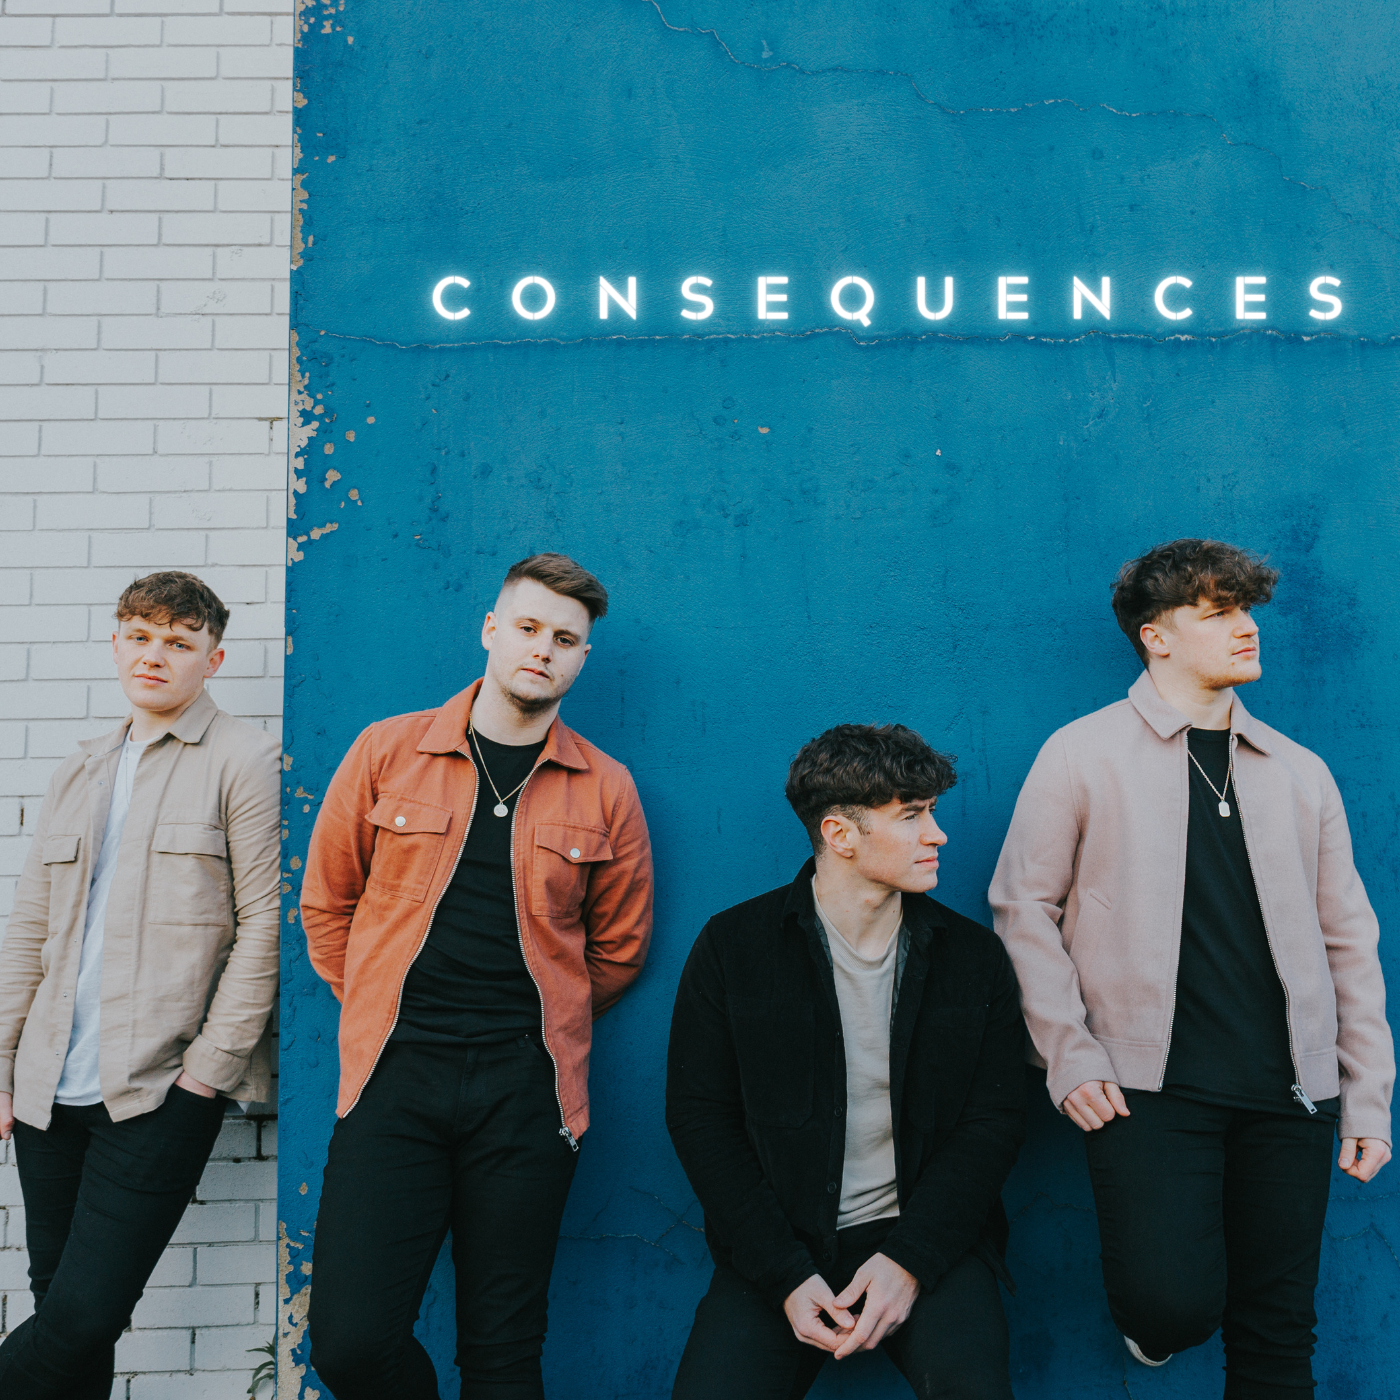 """LAVENGRO – Their brand new single """"Consequences"""" available on all streaming platforms 25 June 2021"""